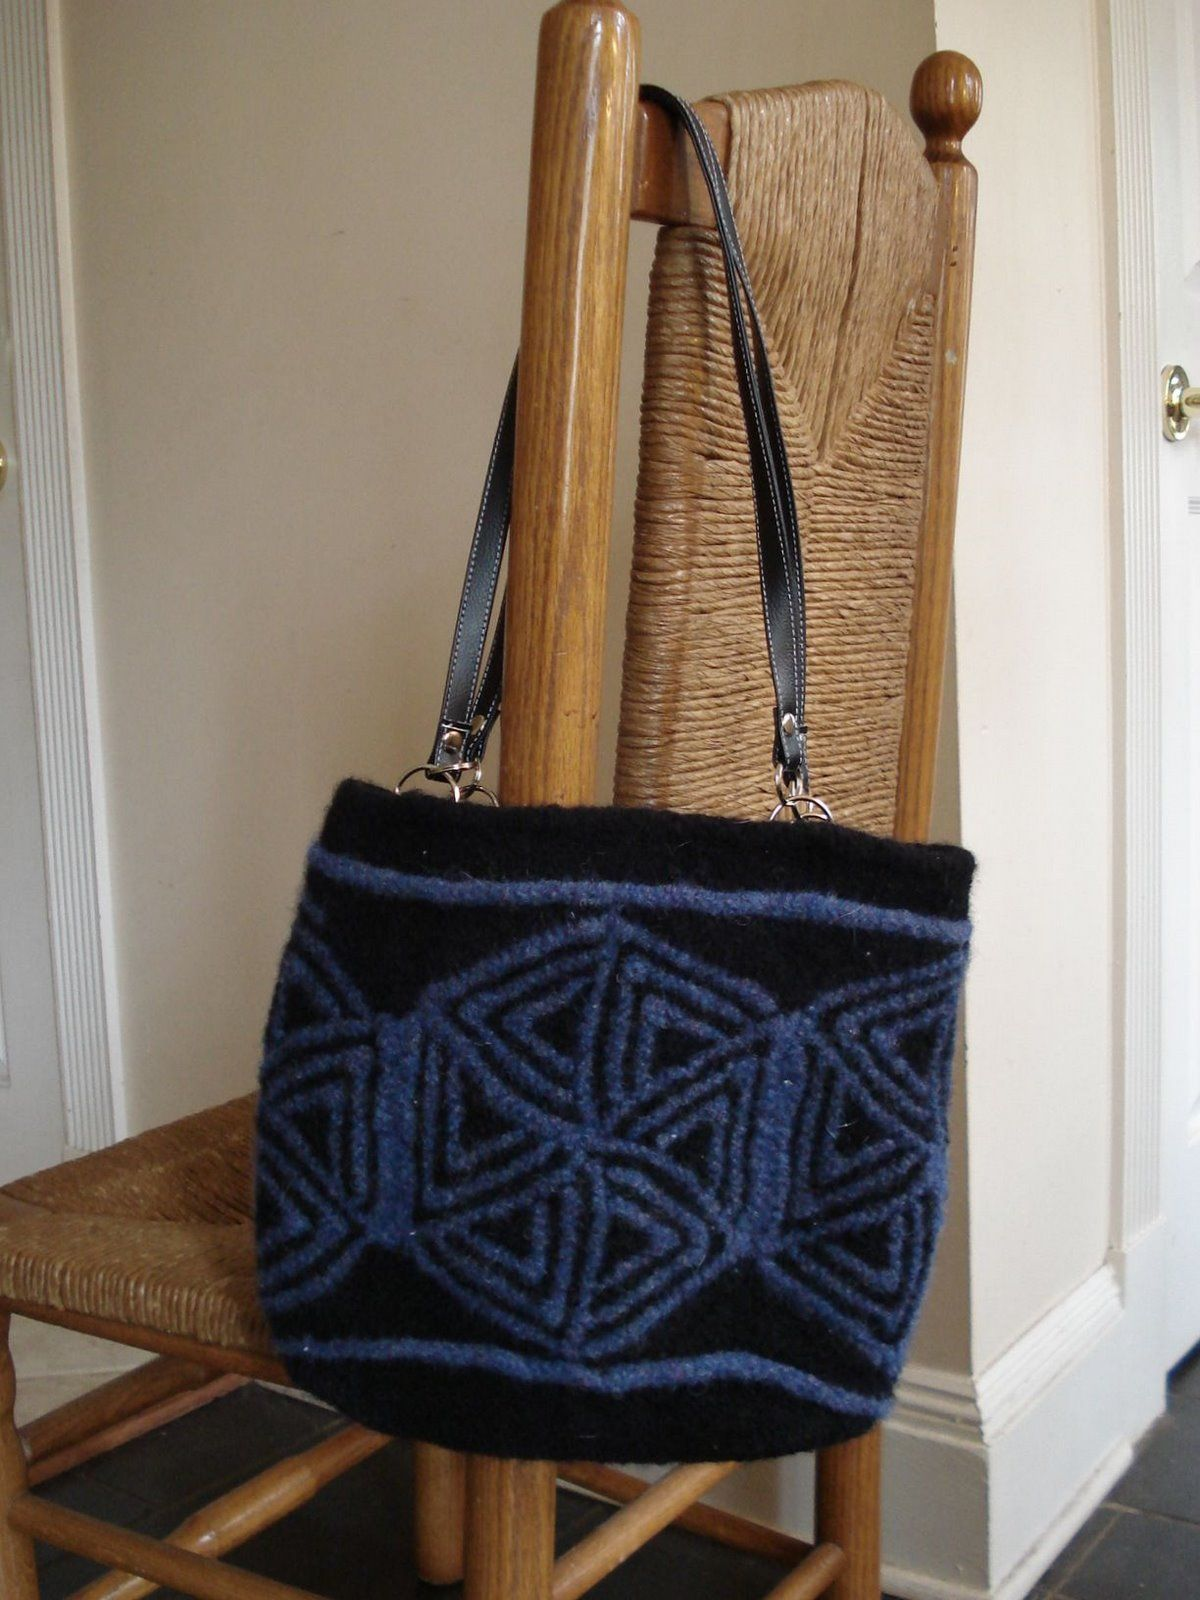 TriMiters Felted Handbag  #Bag #Totes #Purse #Free #Knitting #Pattern #Knitfreepattern